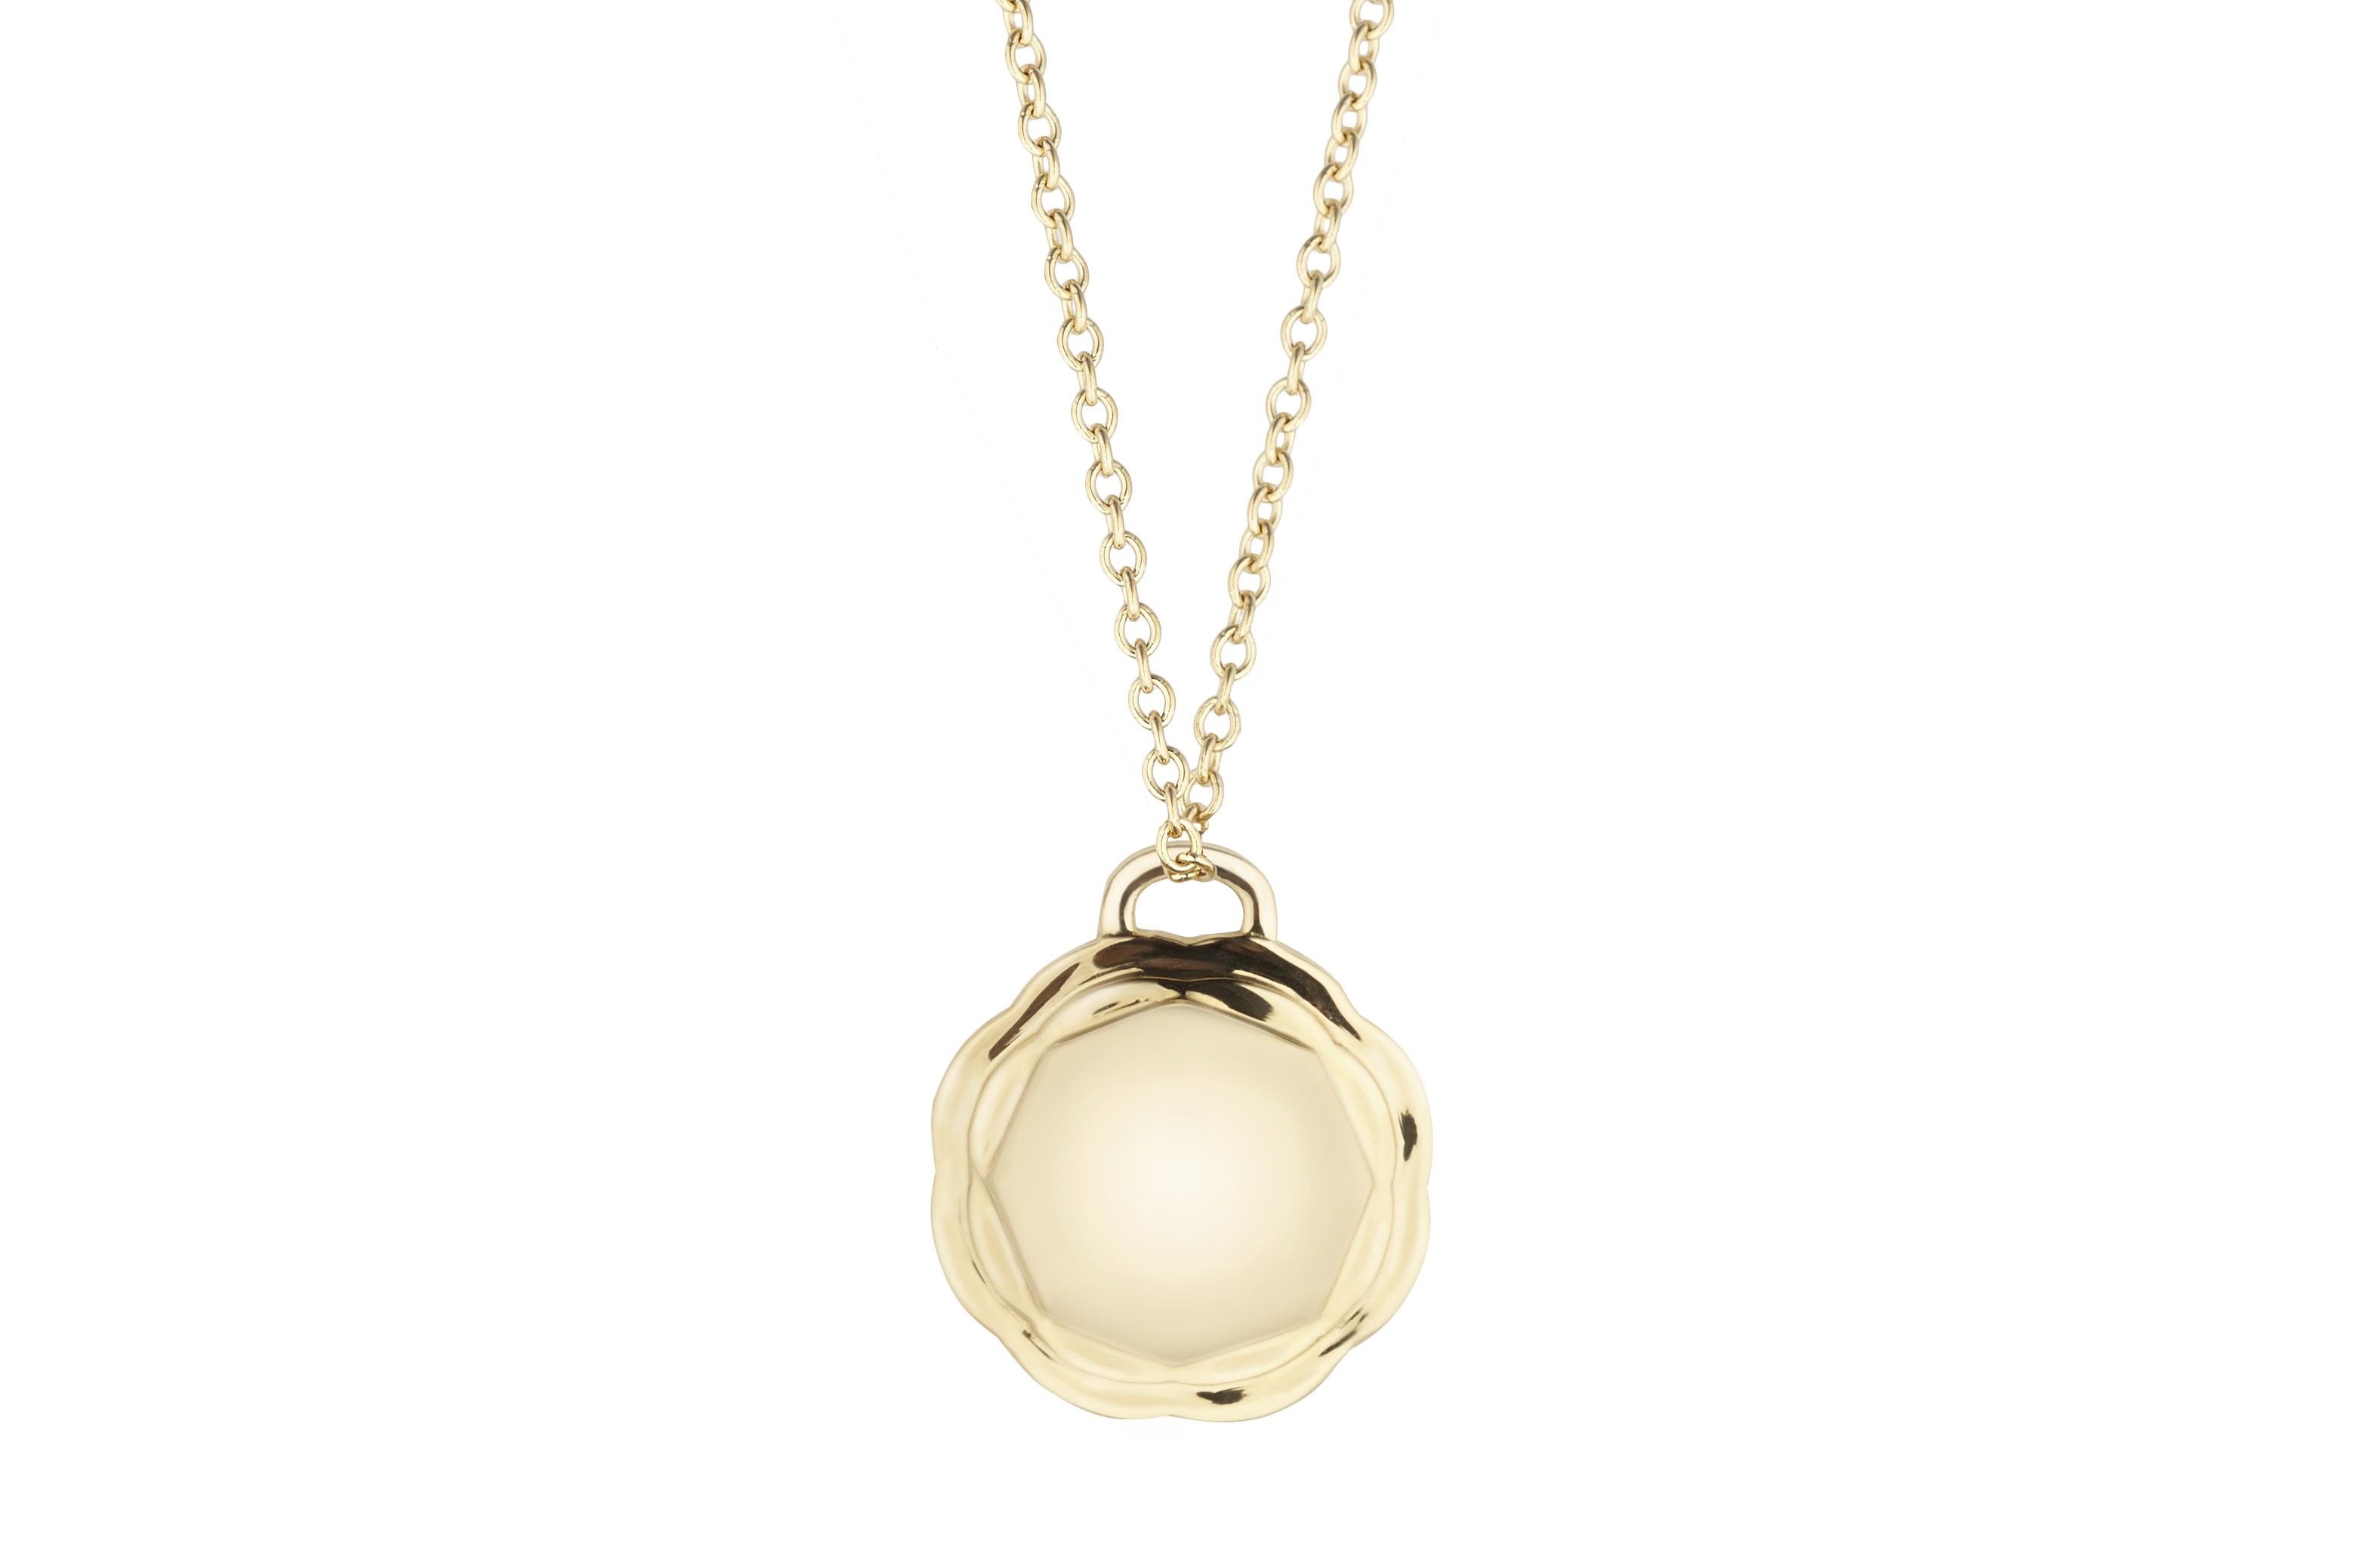 18K Yellow Gold Flora Double Circle Pendant on AIDIA Extendable Link Chain